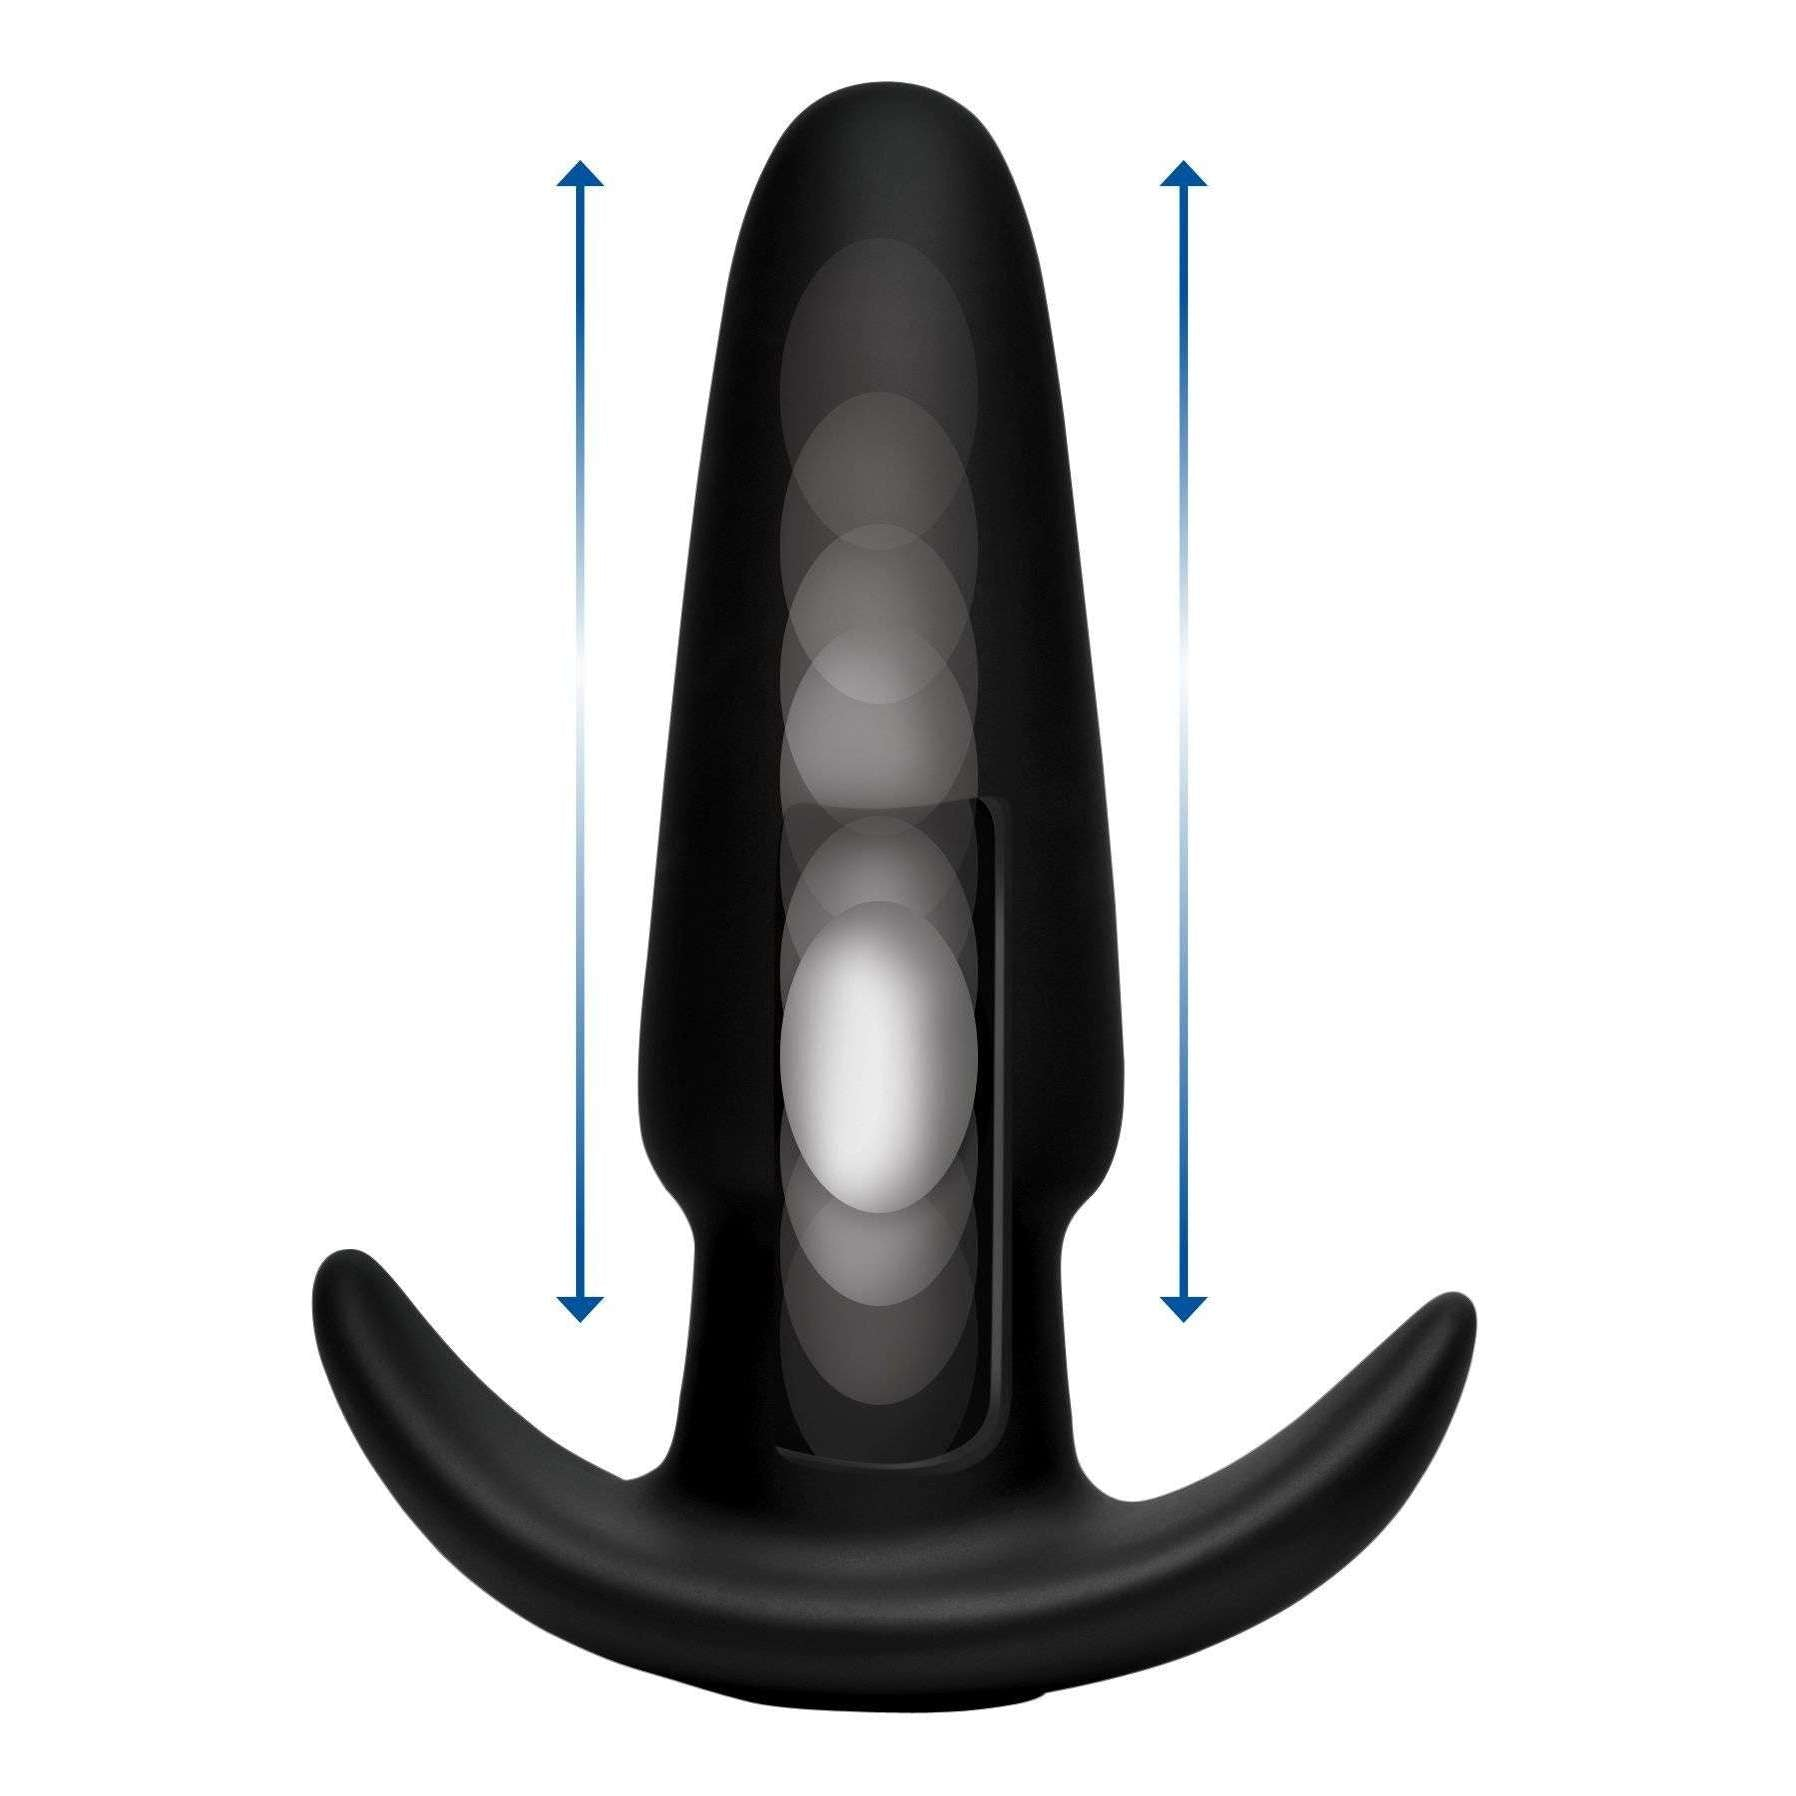 Kinetic Thumping 7X Medium Anal Plug